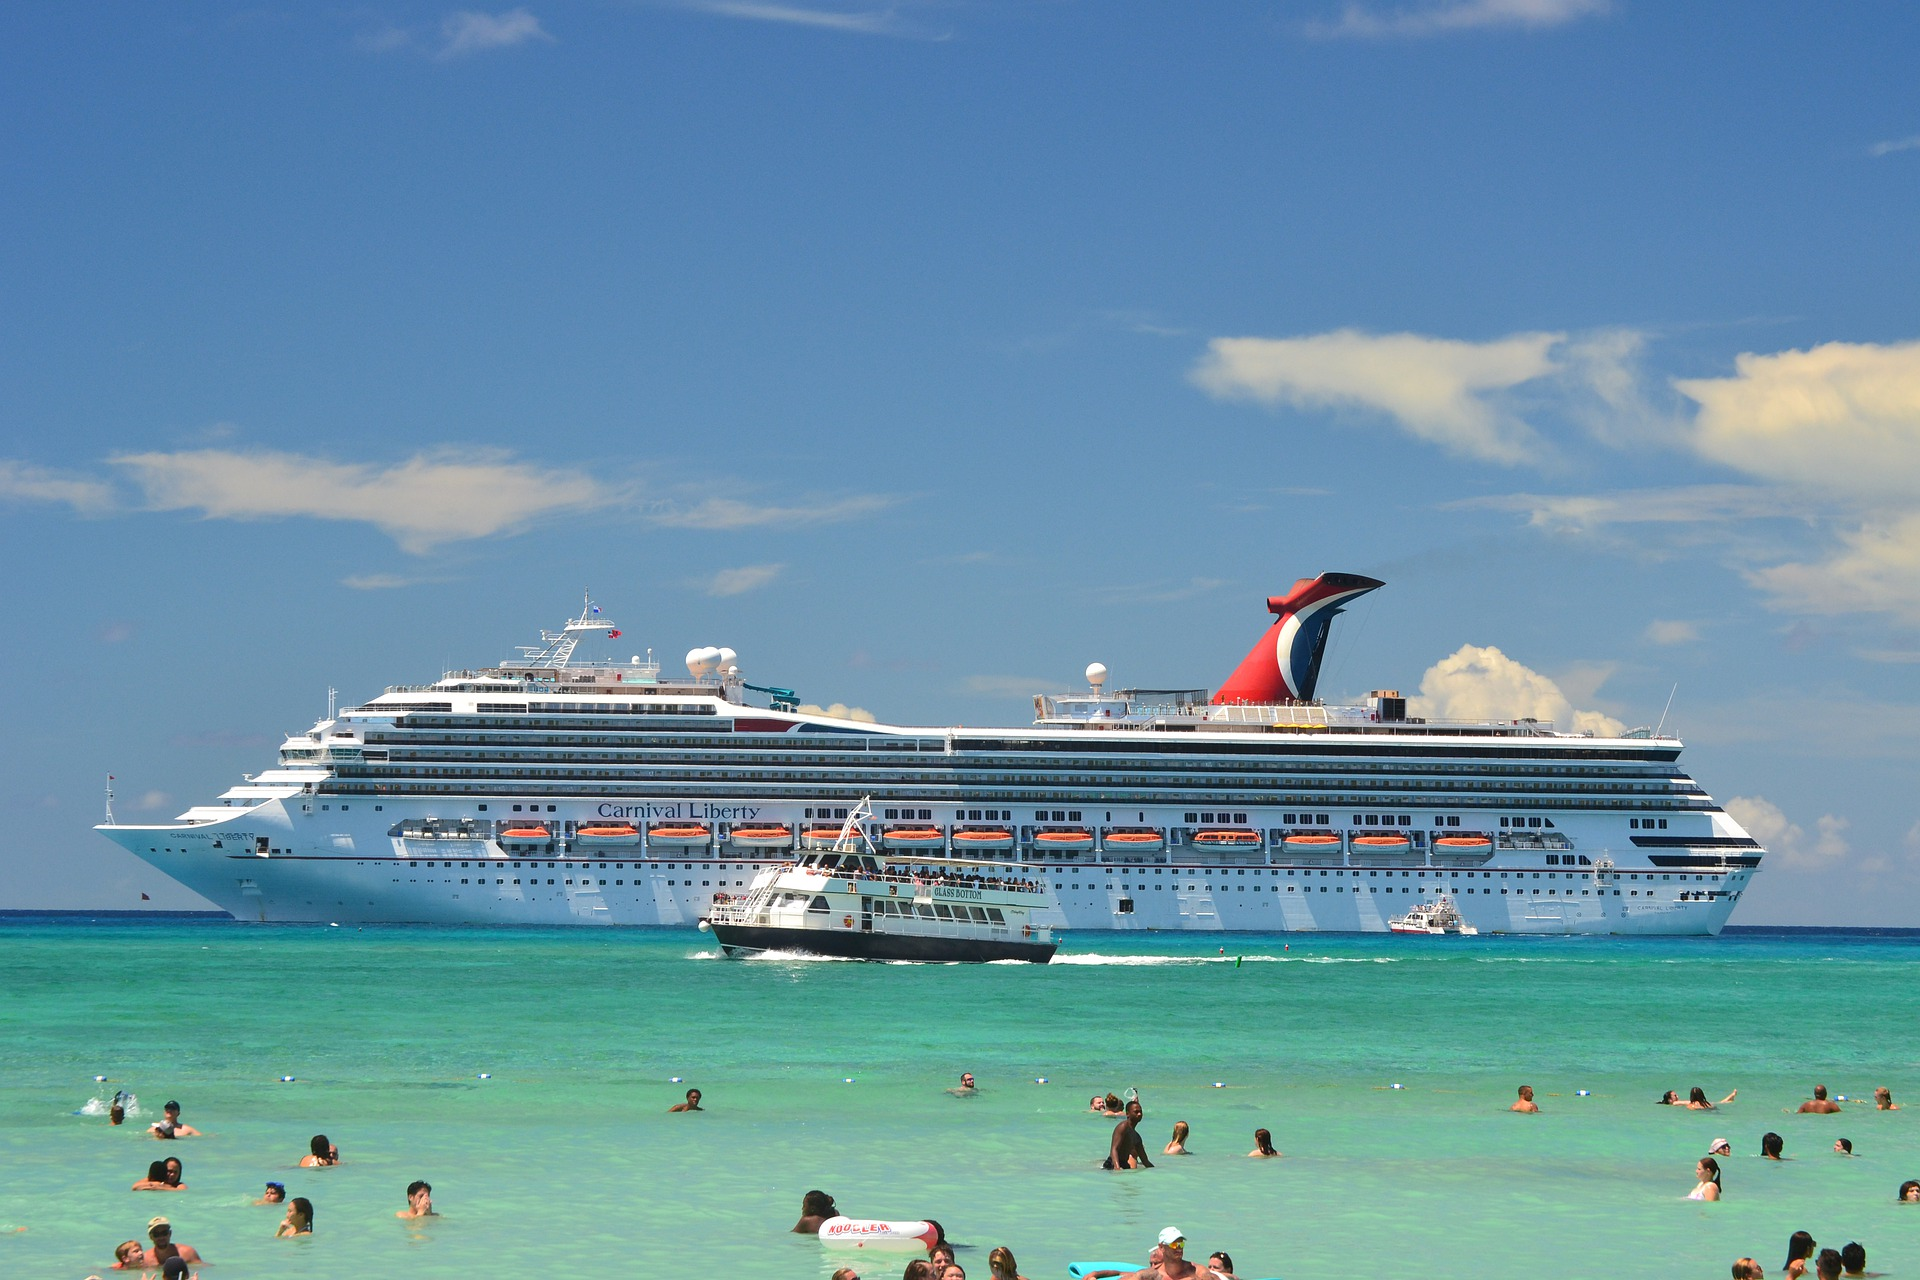 Carnival Liberty cruise ship off the coast of a beach (source: asram02, Pixabay)